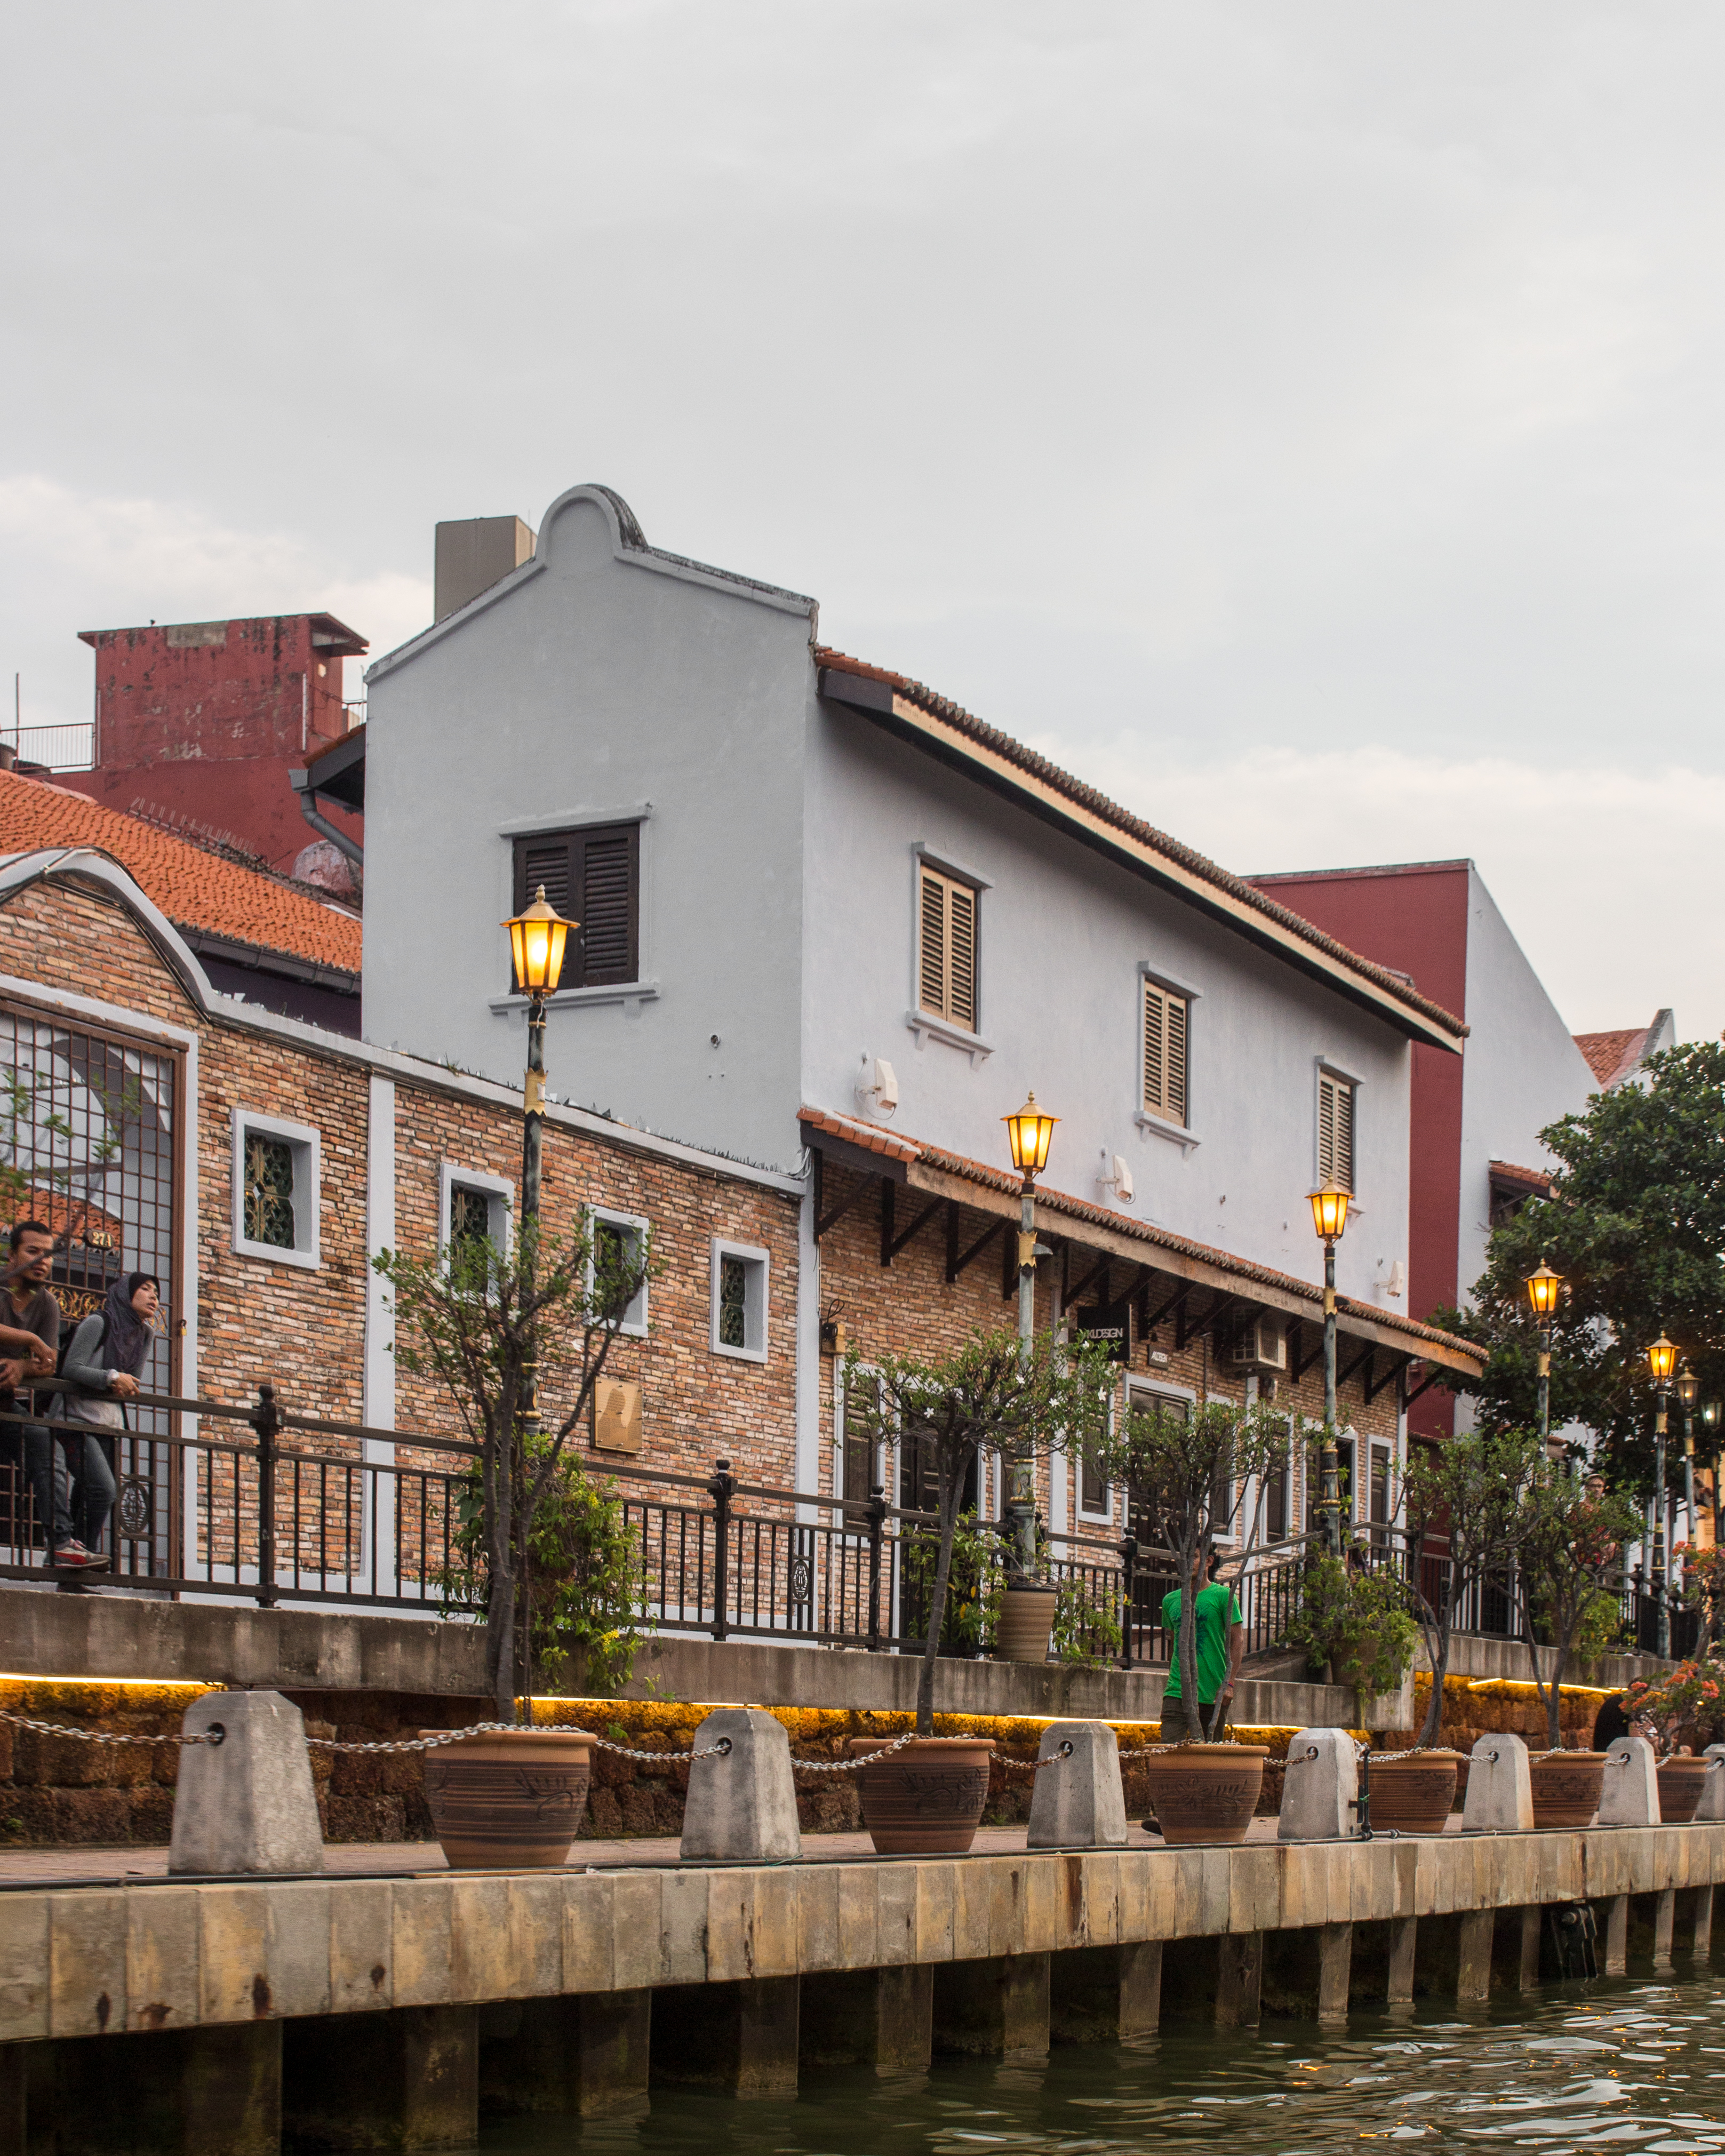 Malacca 2D1N Travelogue